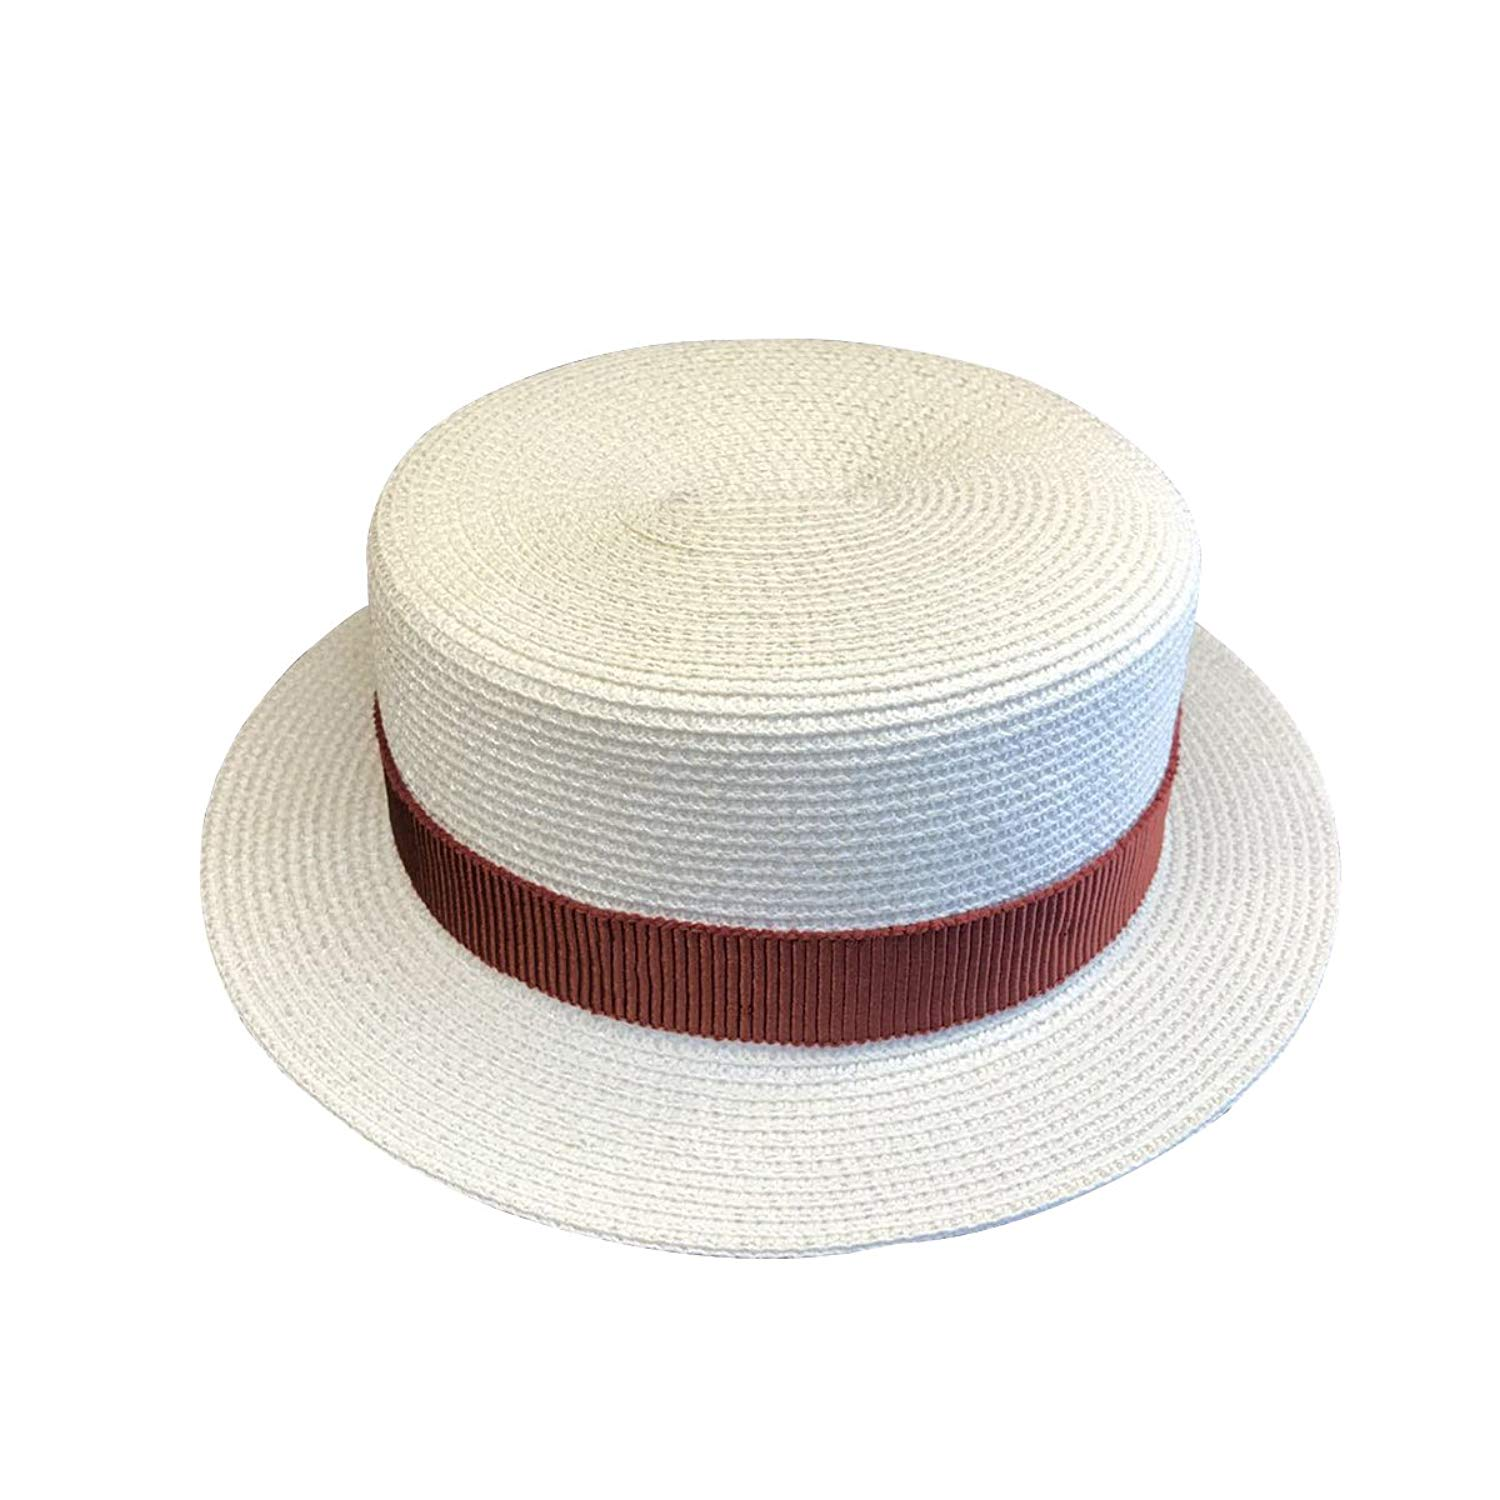 f4a3774bef08 Cheap Flat Top Straw Boater Hat, find Flat Top Straw Boater Hat ...